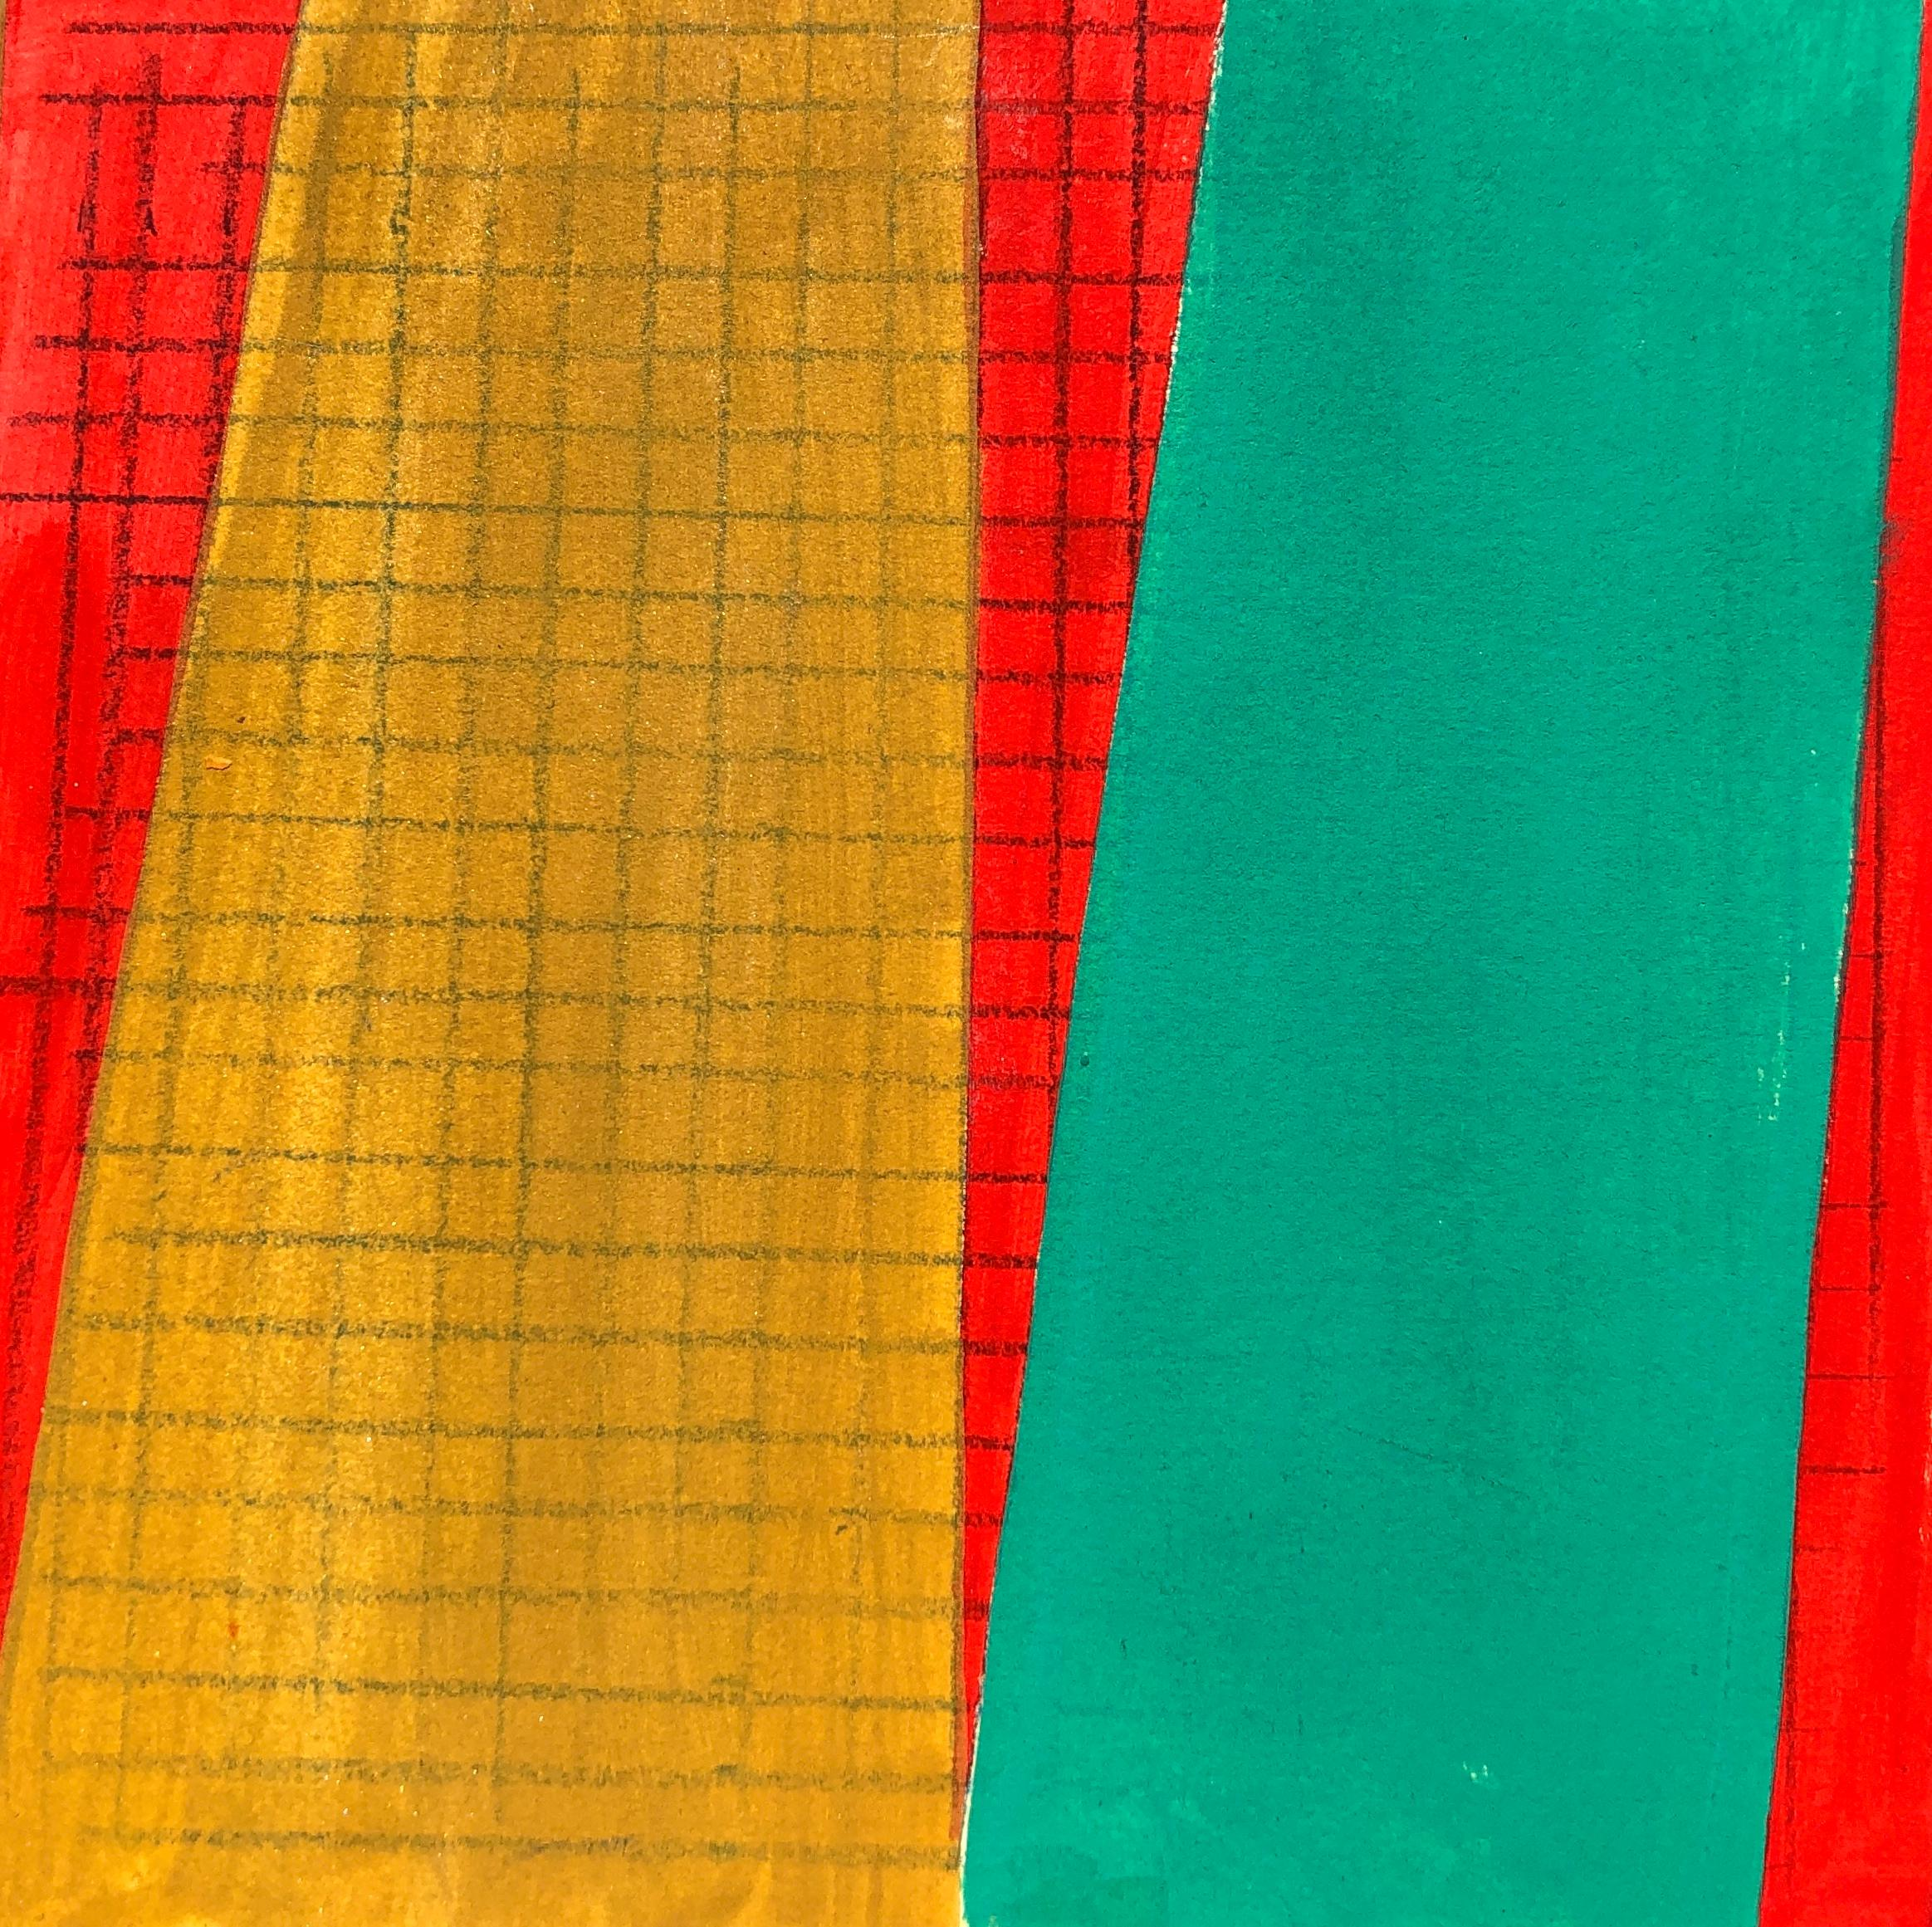 S3, abstract geometric pattern, mixed media on paper, green, yellow and red